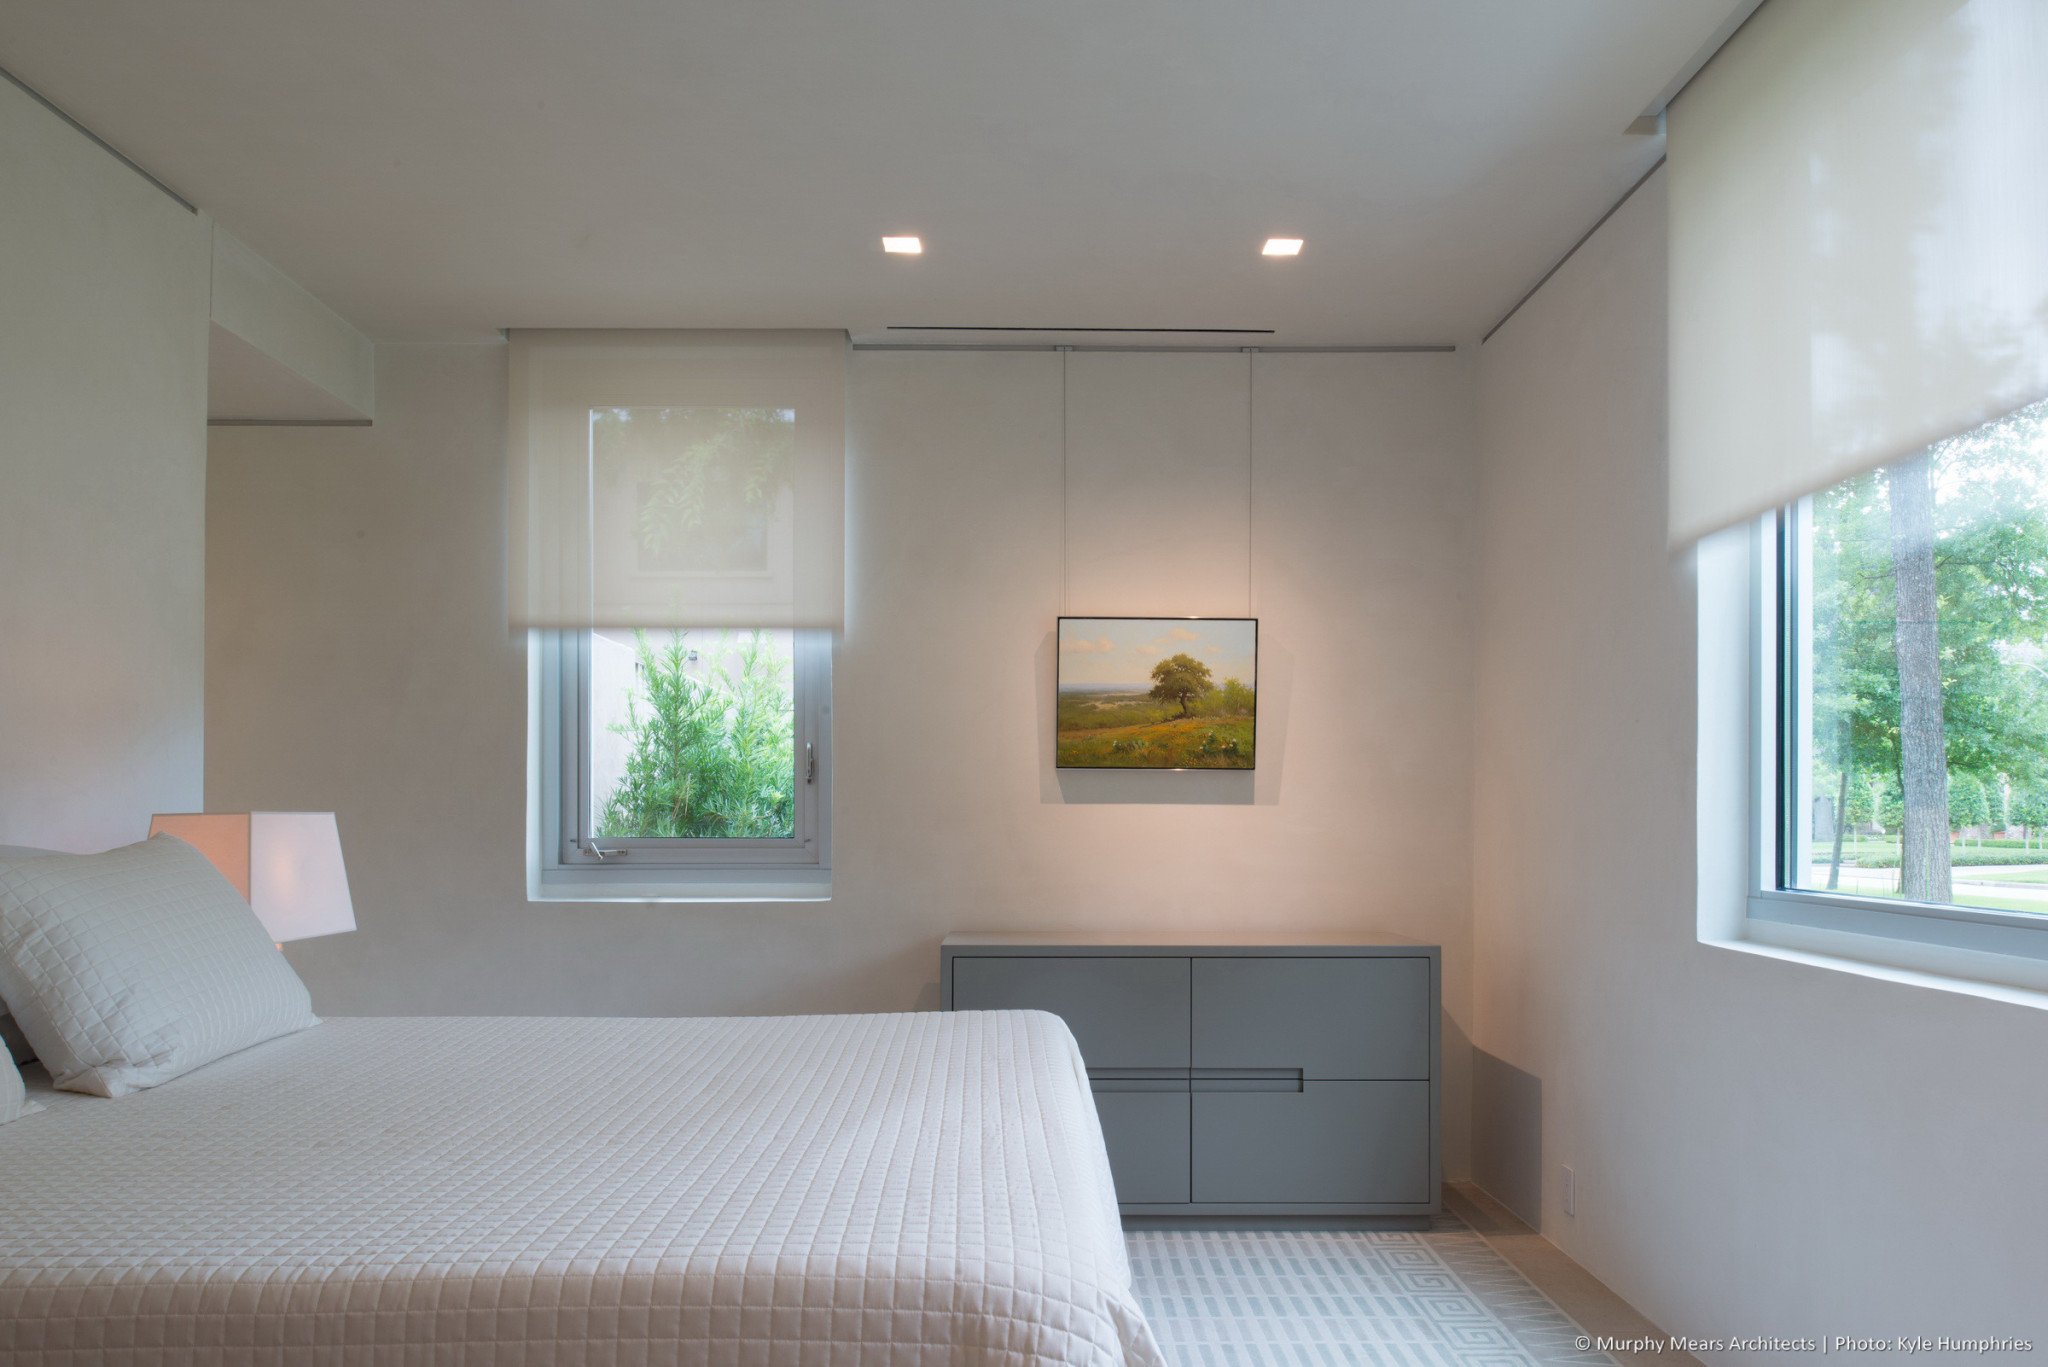 Guest bedroom with automated shades raising into hidden pockets above the West and South windows.